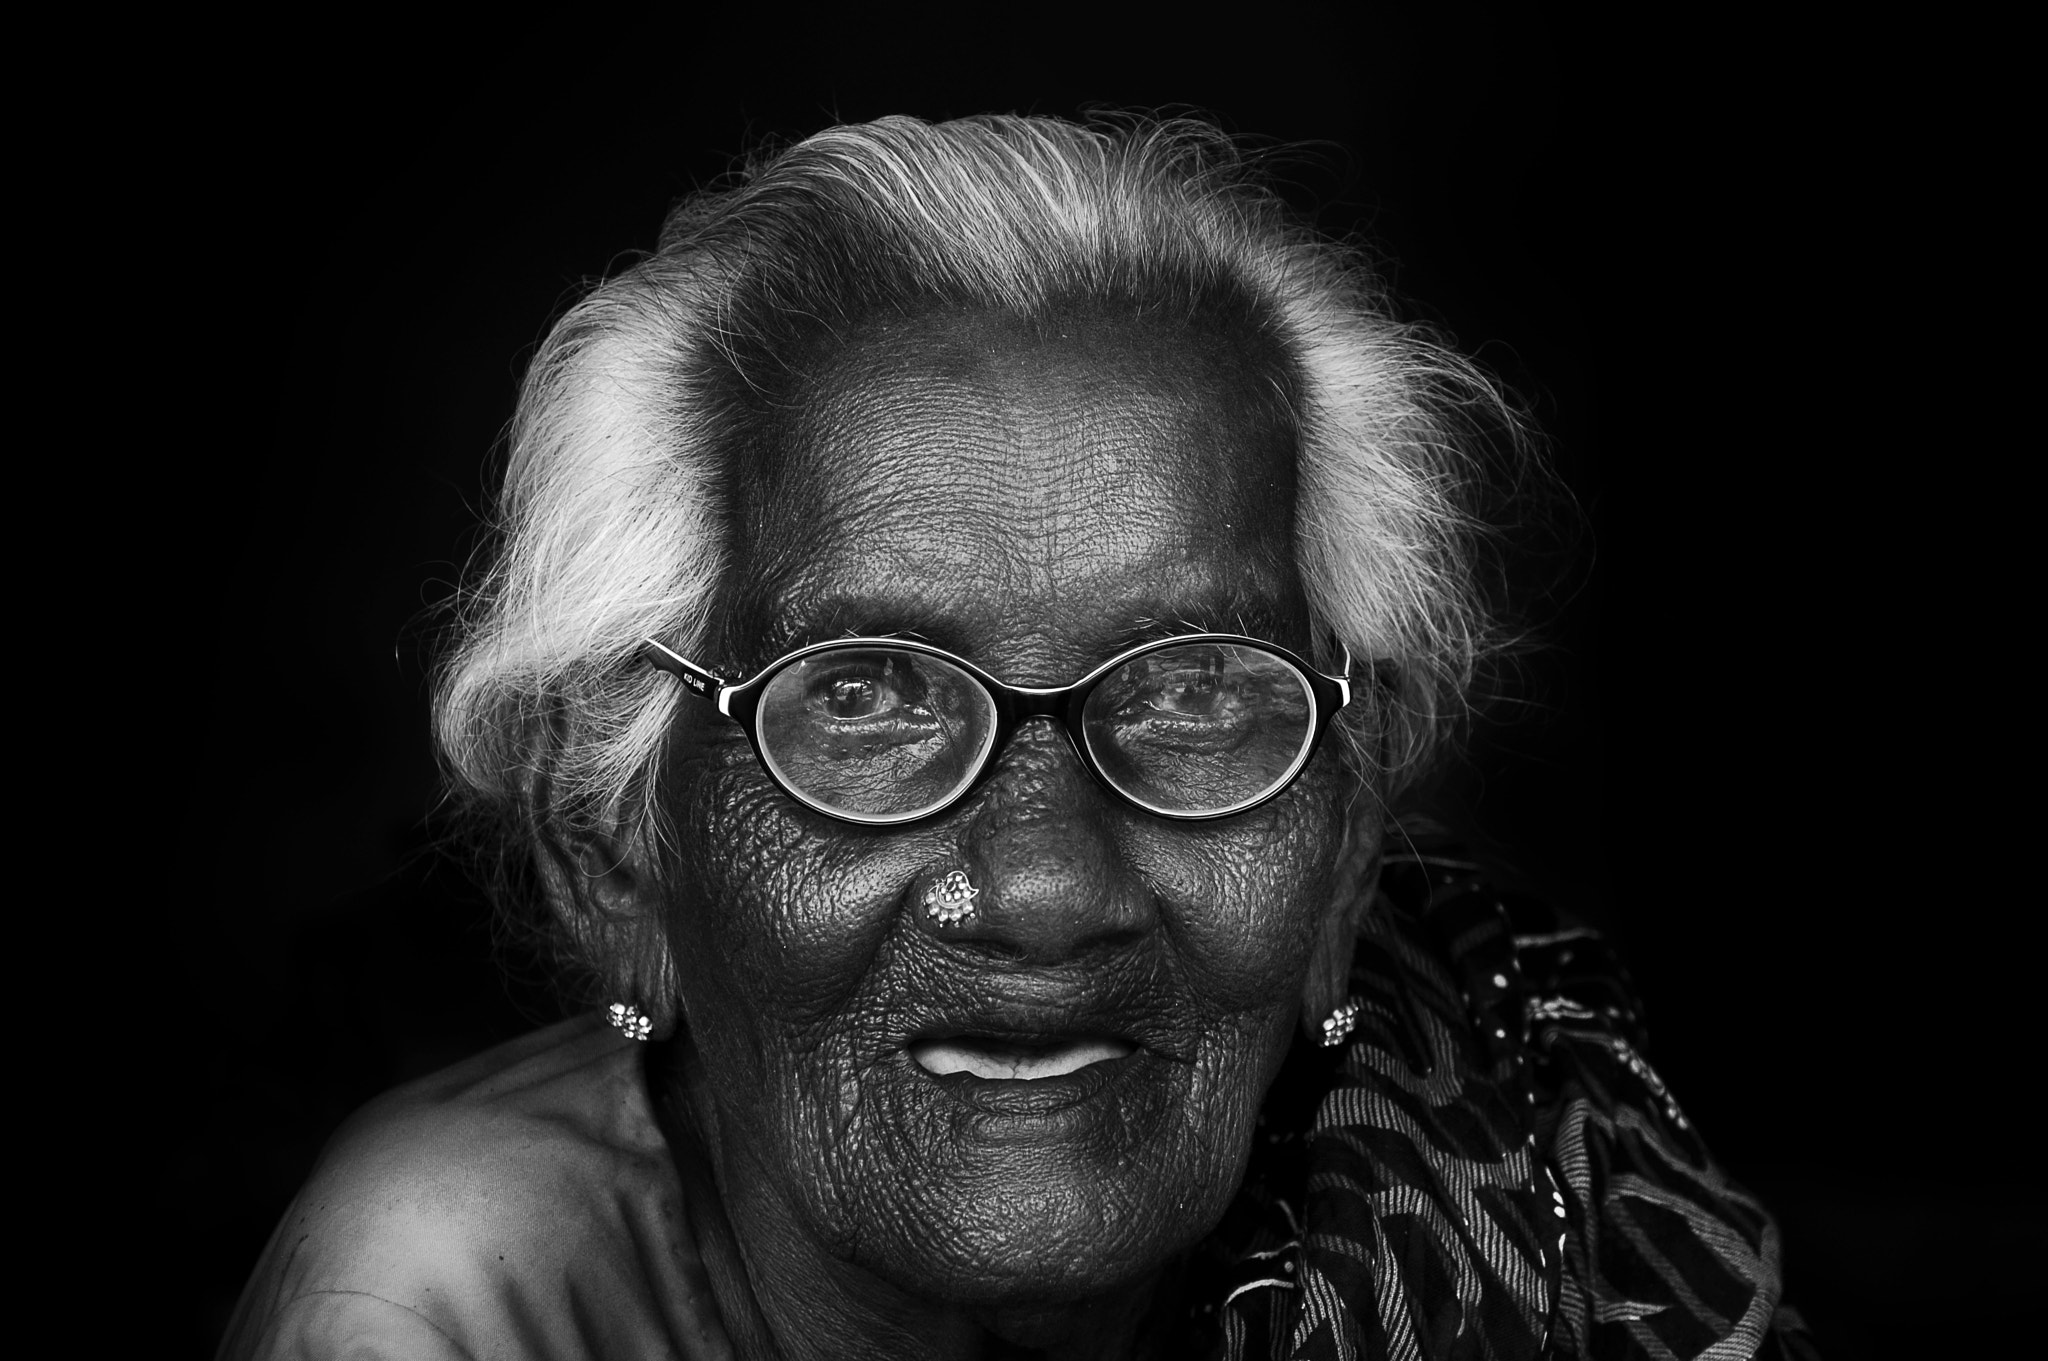 Photograph Age | Wrinkle | Experience  by Saravanan Dhandapani on 500px